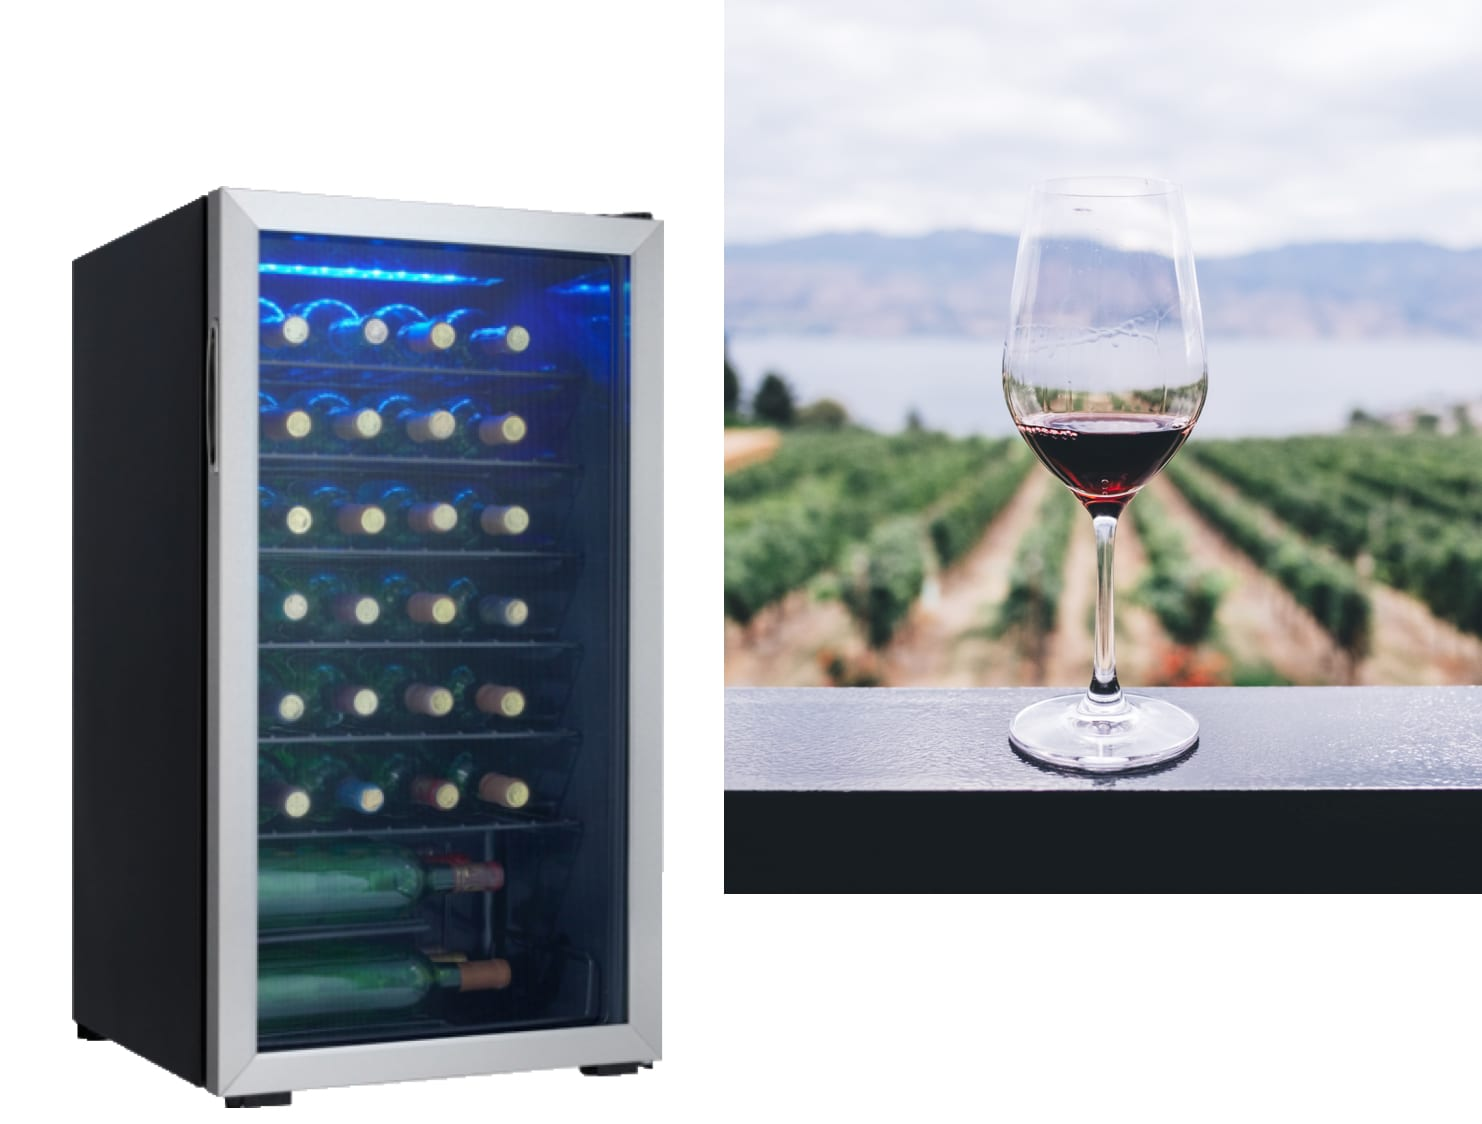 Black and silver danby wine cooler